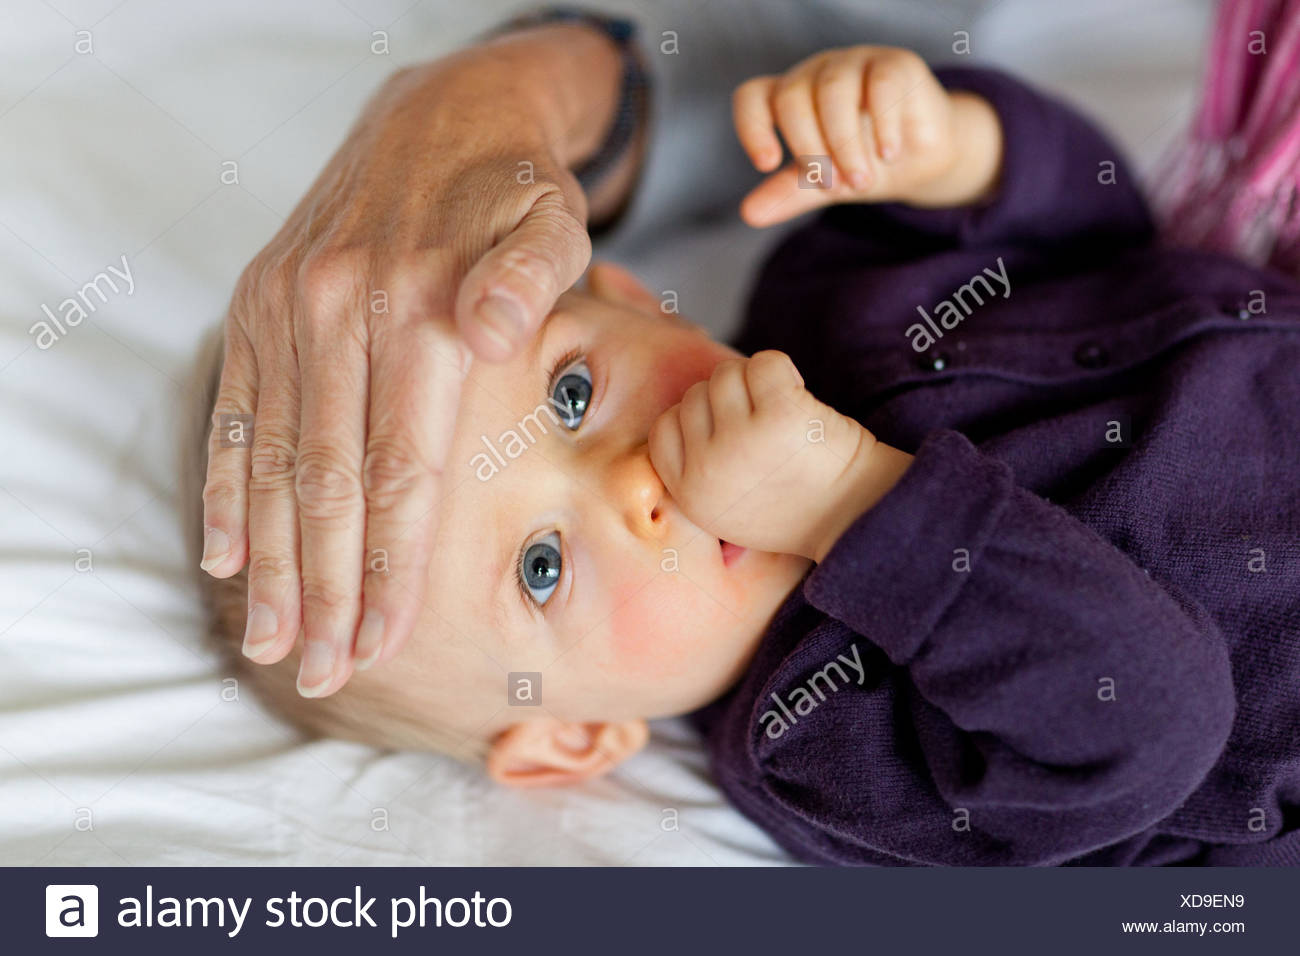 Hand checking temperature of 10-month-old baby's head.